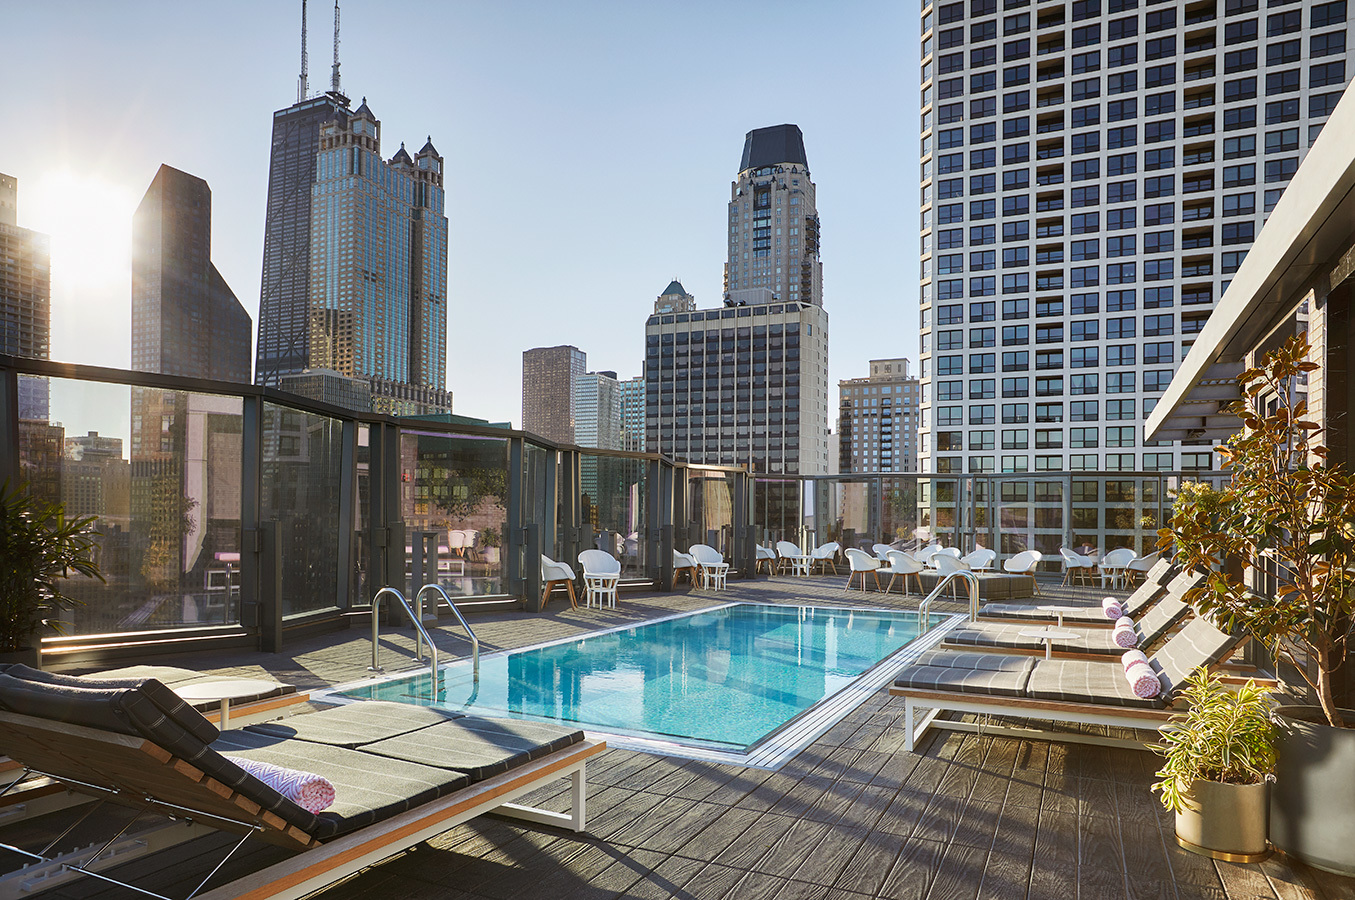 The 21 best rooftop bars in Chicago